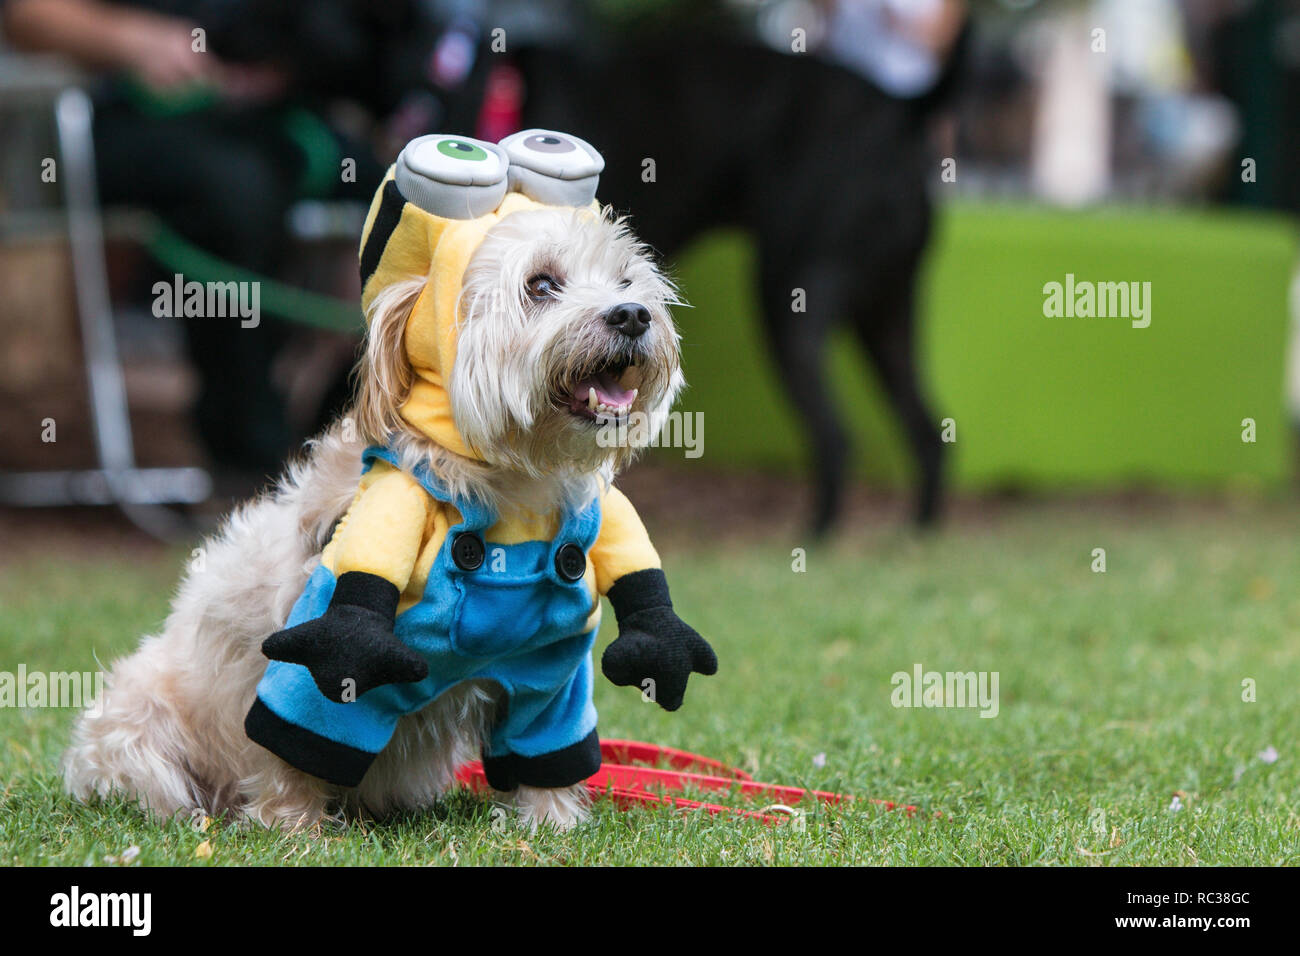 A cute dog wears a minion costume from the movie Despicable Me at Doggy Con, a dog costume contest on August 18, 2018 in Atlanta, GA. - Stock Image